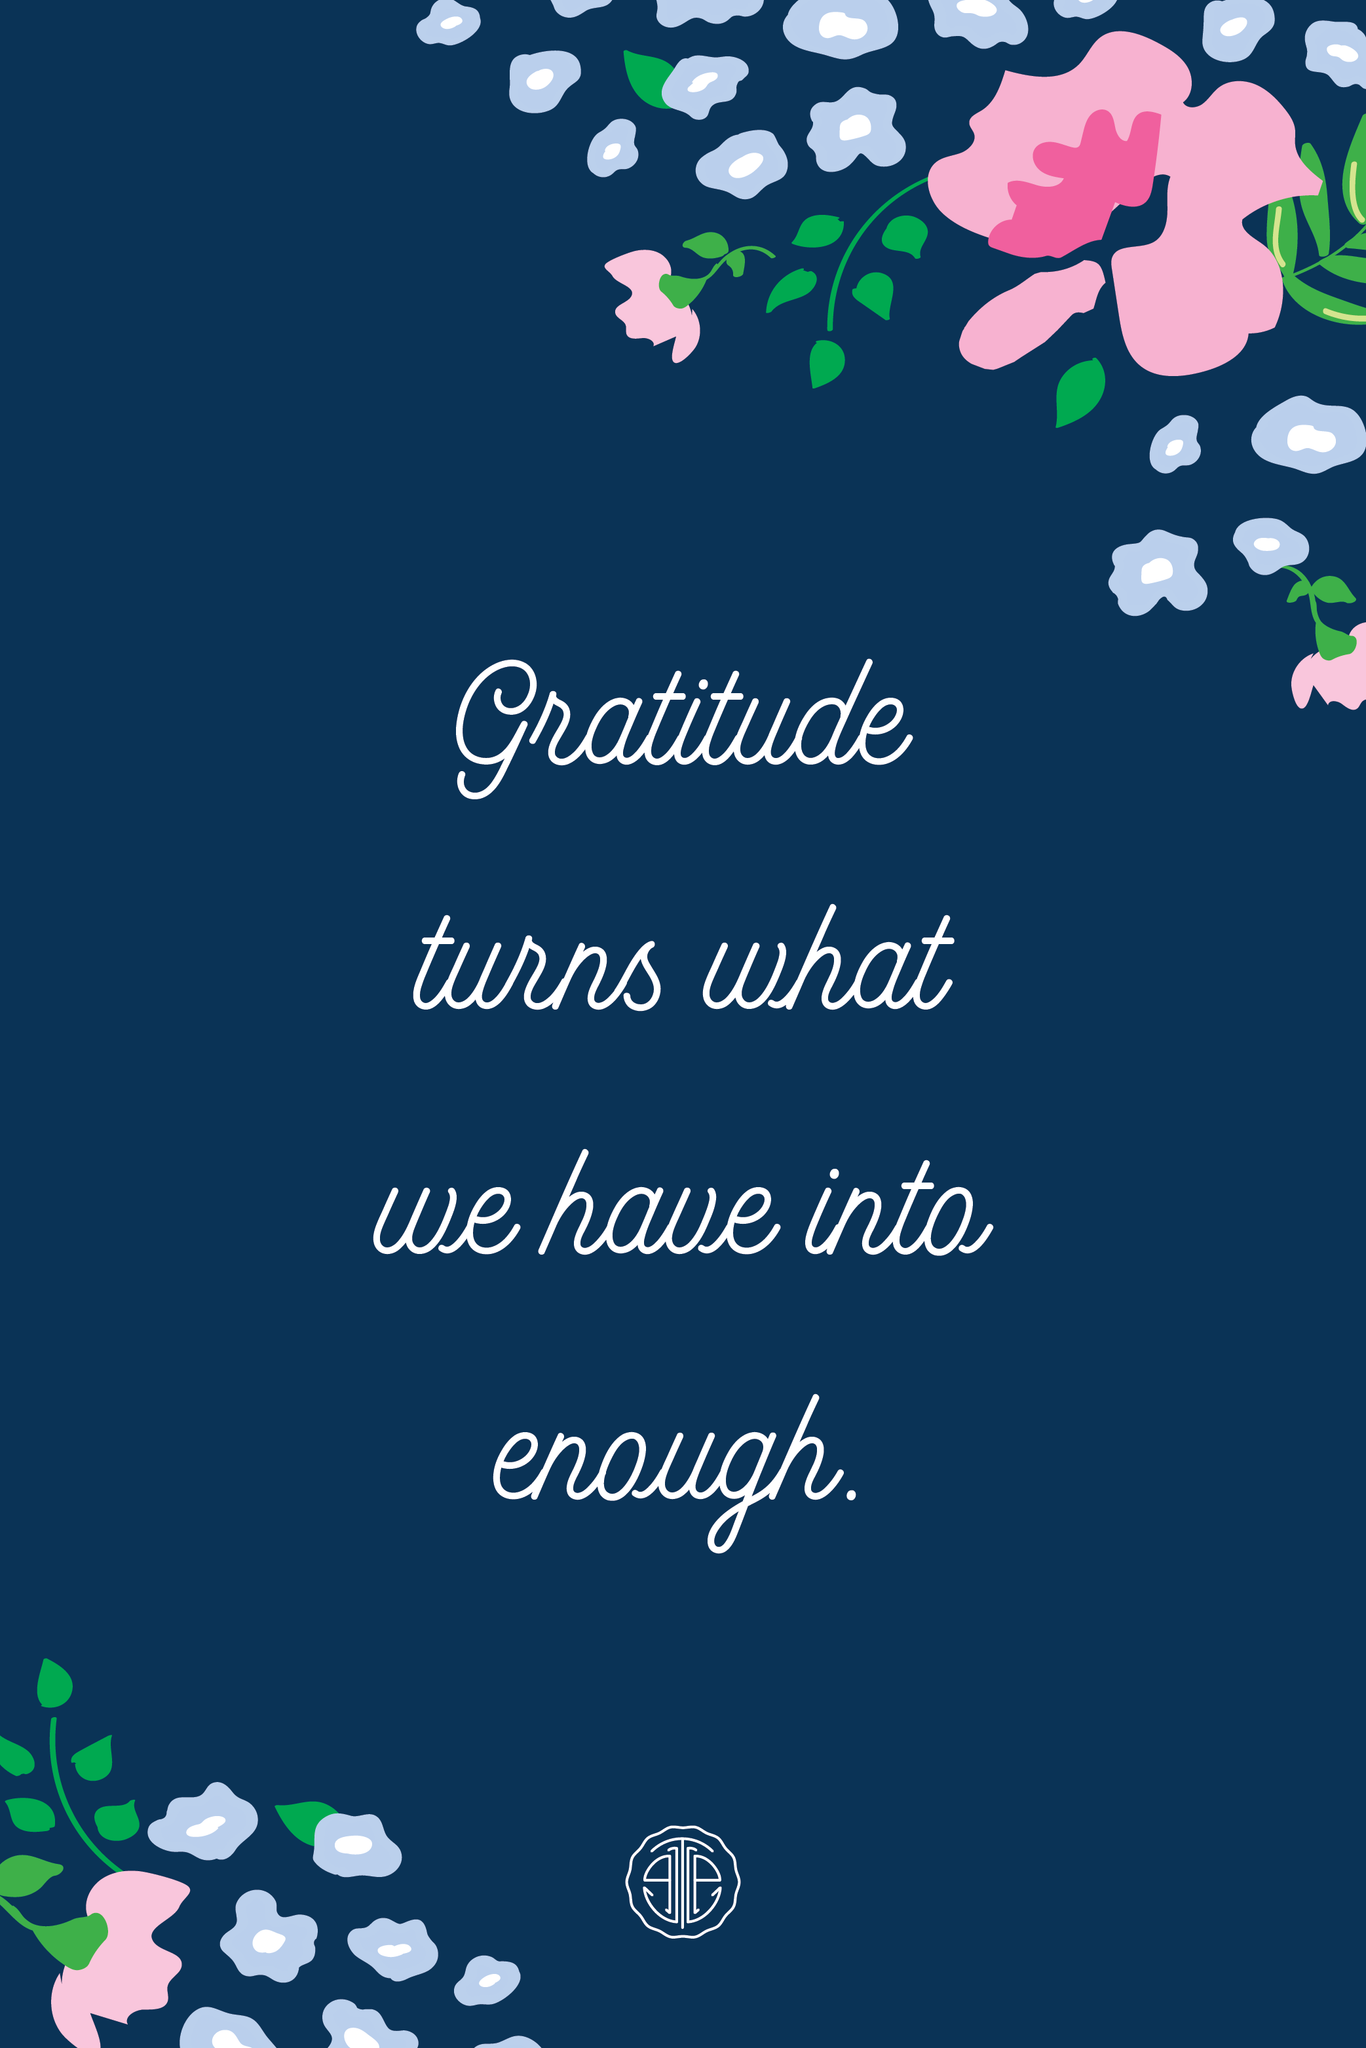 gratitude quote with floral background